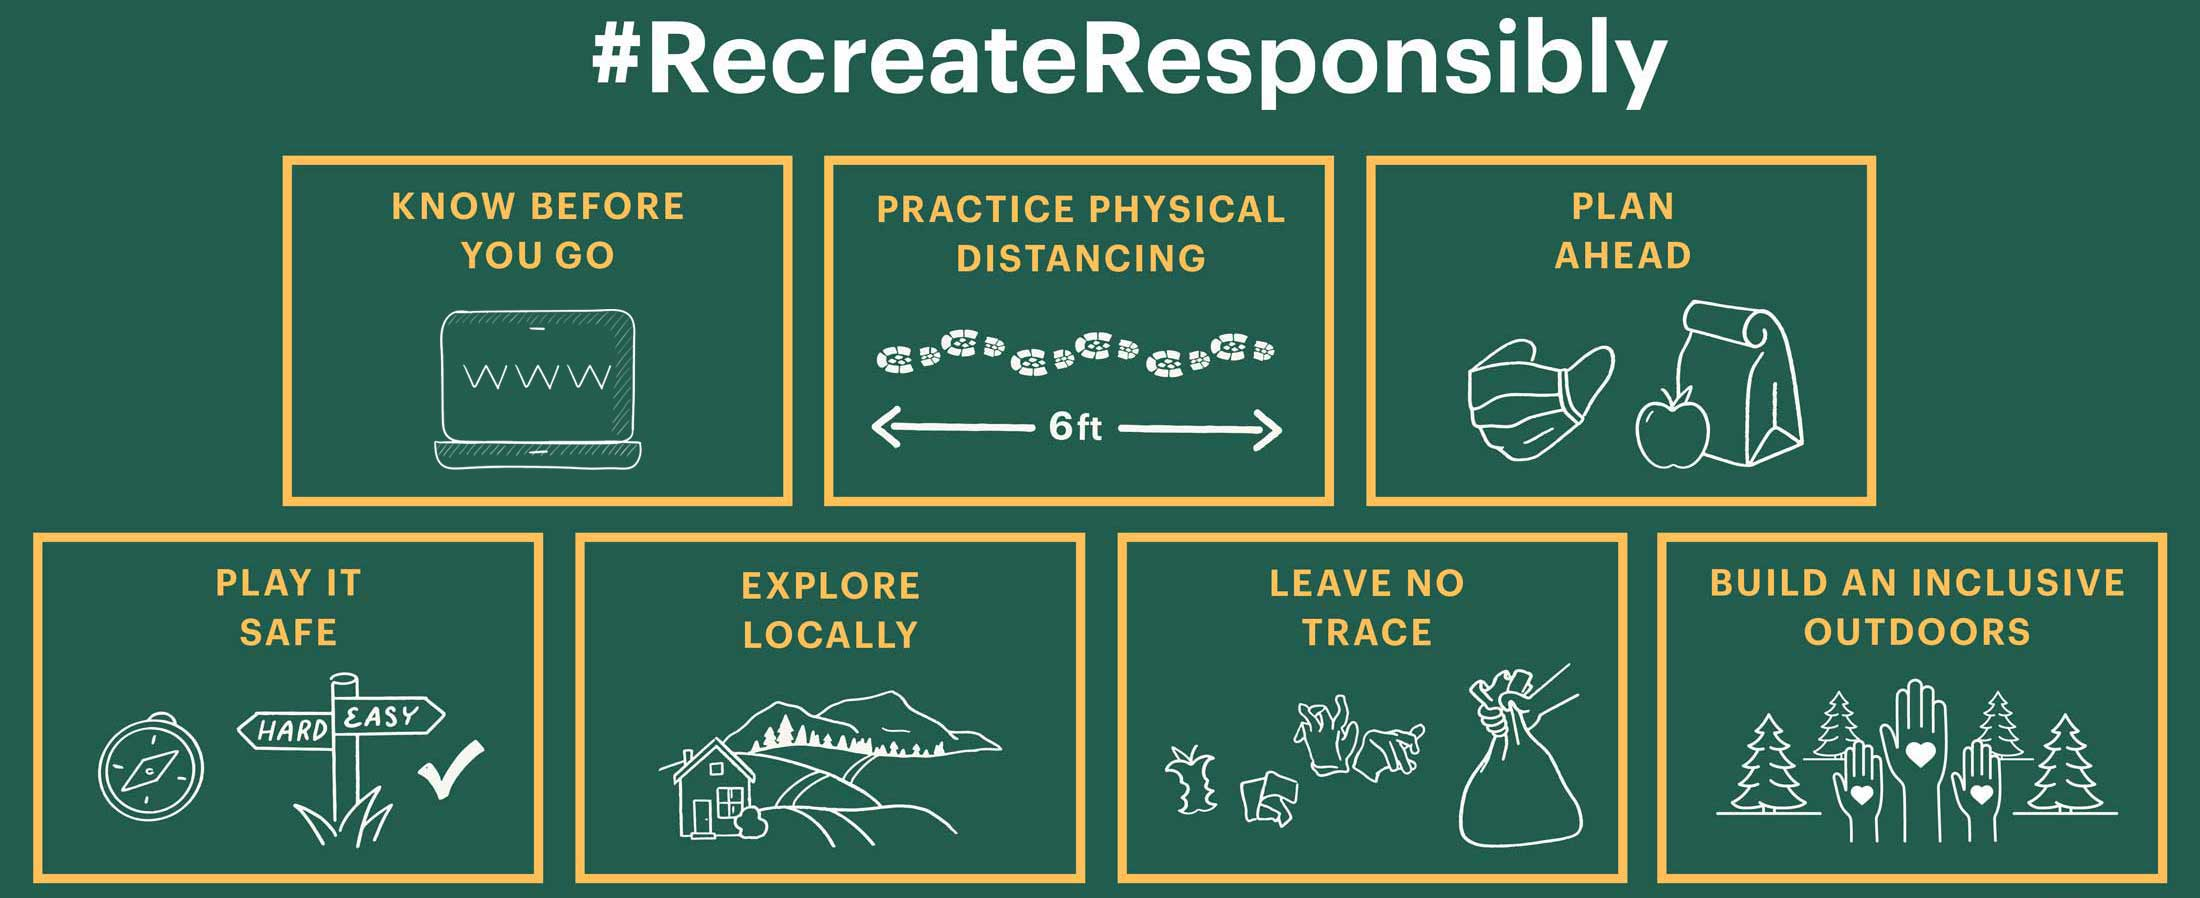 Recreate Responsibly infographic: Know Before You Go - Practice Physical Distancing